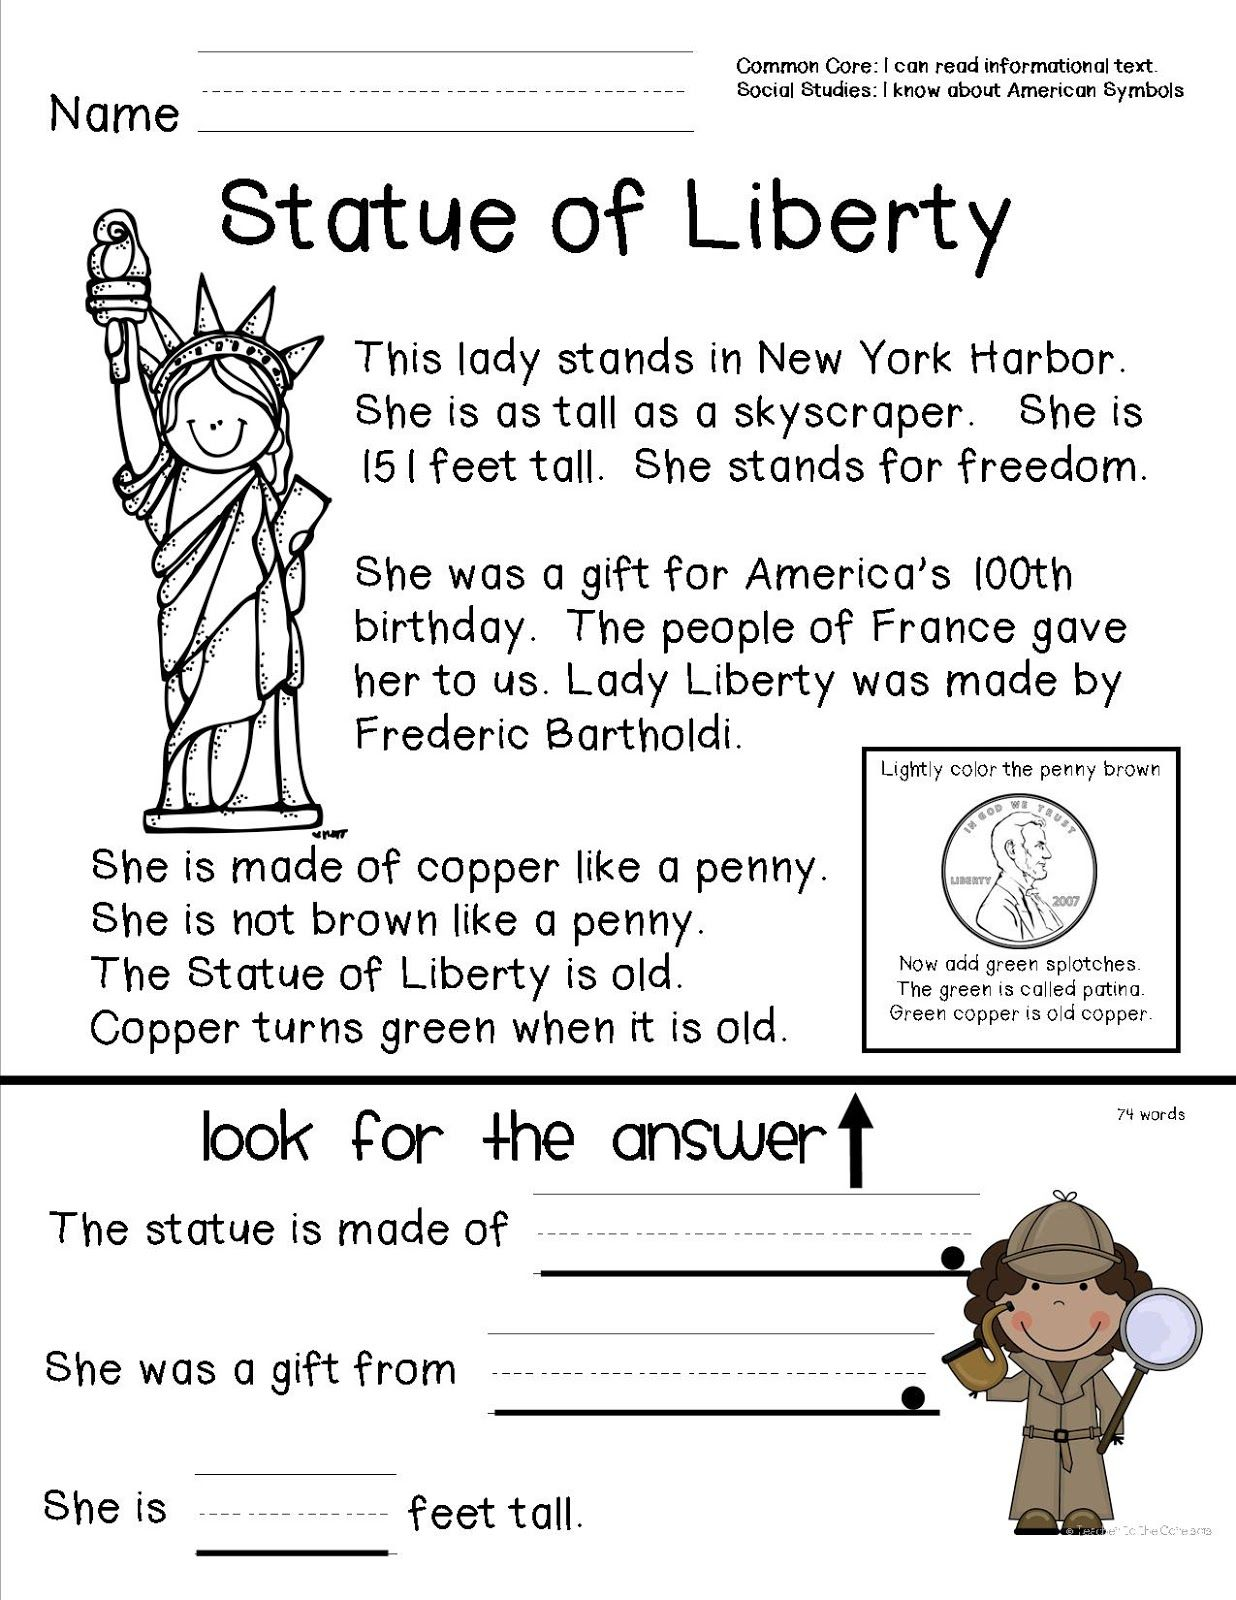 Uncategorized Social Studies Worksheets For 1st Grade reading a map geography and worksheets comprehension sheet about the statue of liberty for primary grades